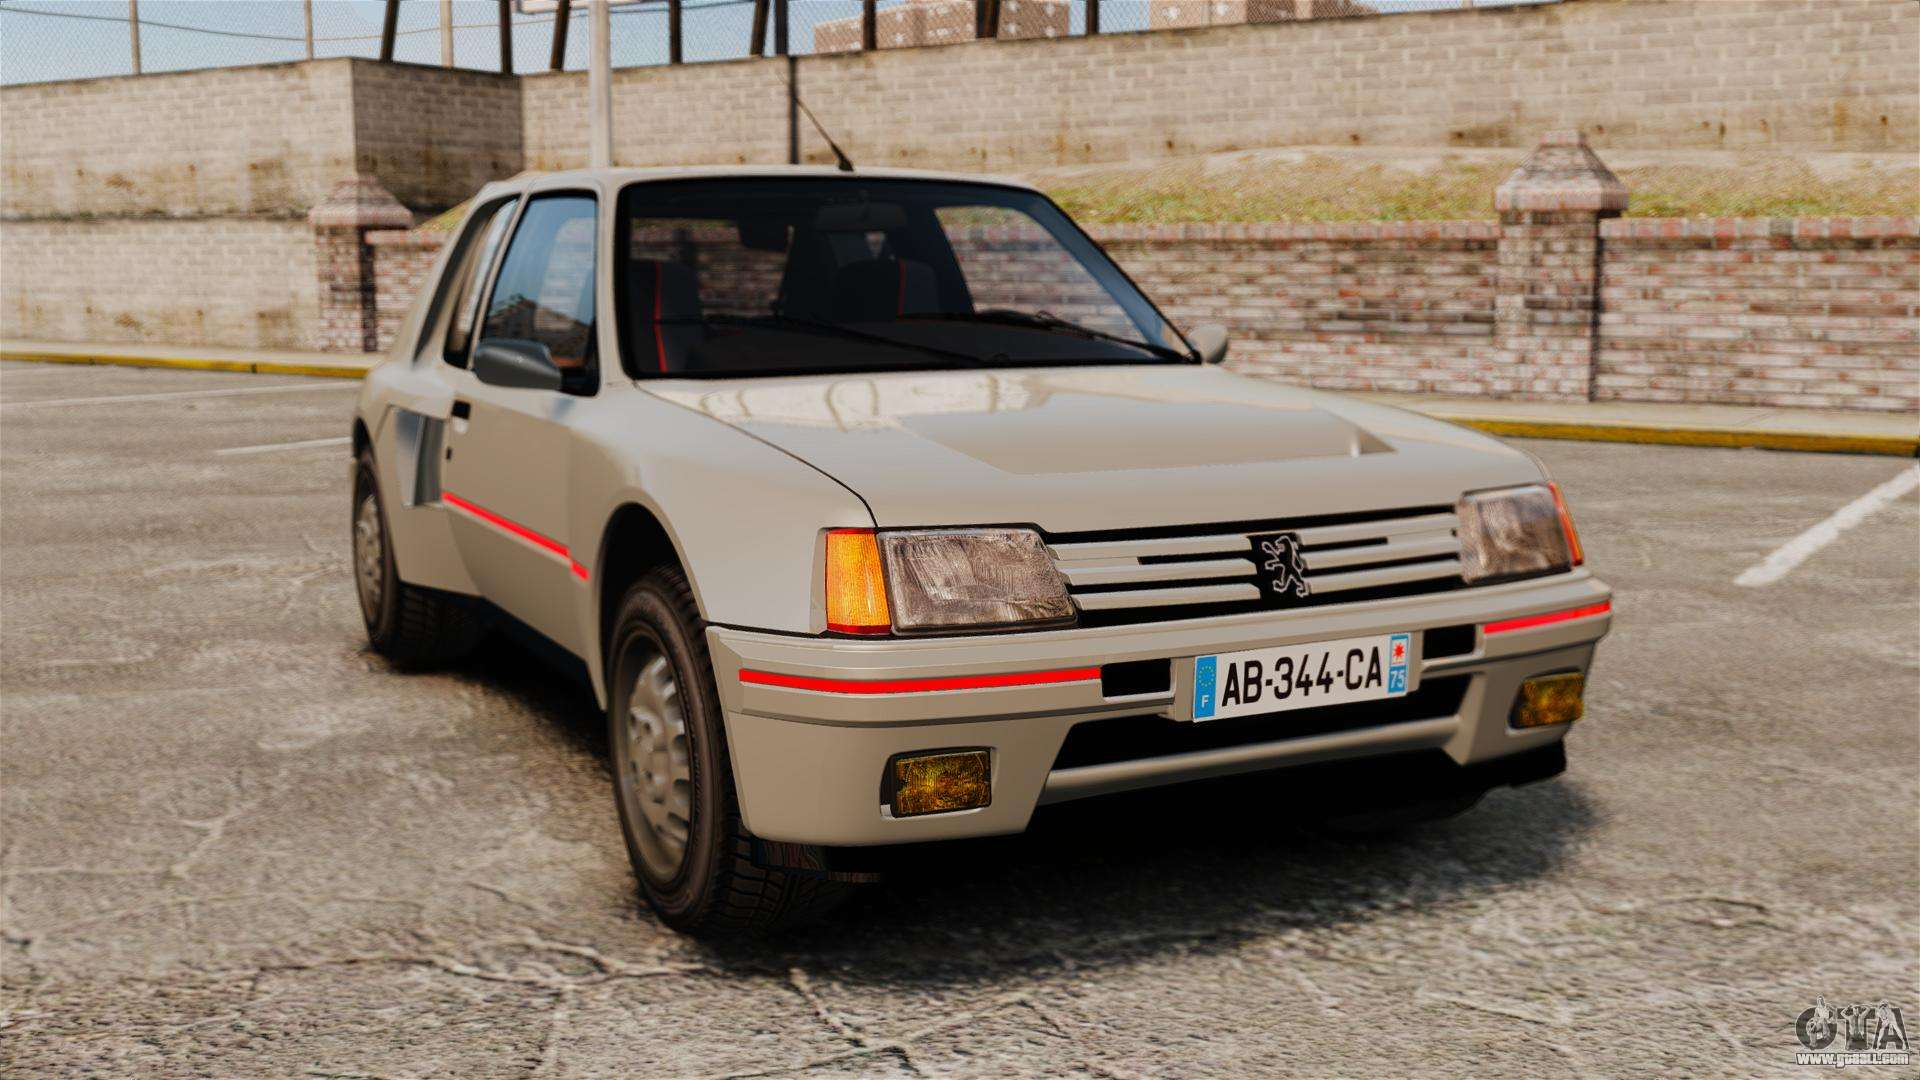 Gta Online Los Santos Customs Car Resale Prices also 41662 Ubermacht Oracle Tuning also 29041 Nissan 370z Tuning furthermore o Ganhar Dinheiro No Gta Online furthermore 31672 Peugeot 205 Turbo 16. on oracle xs gta